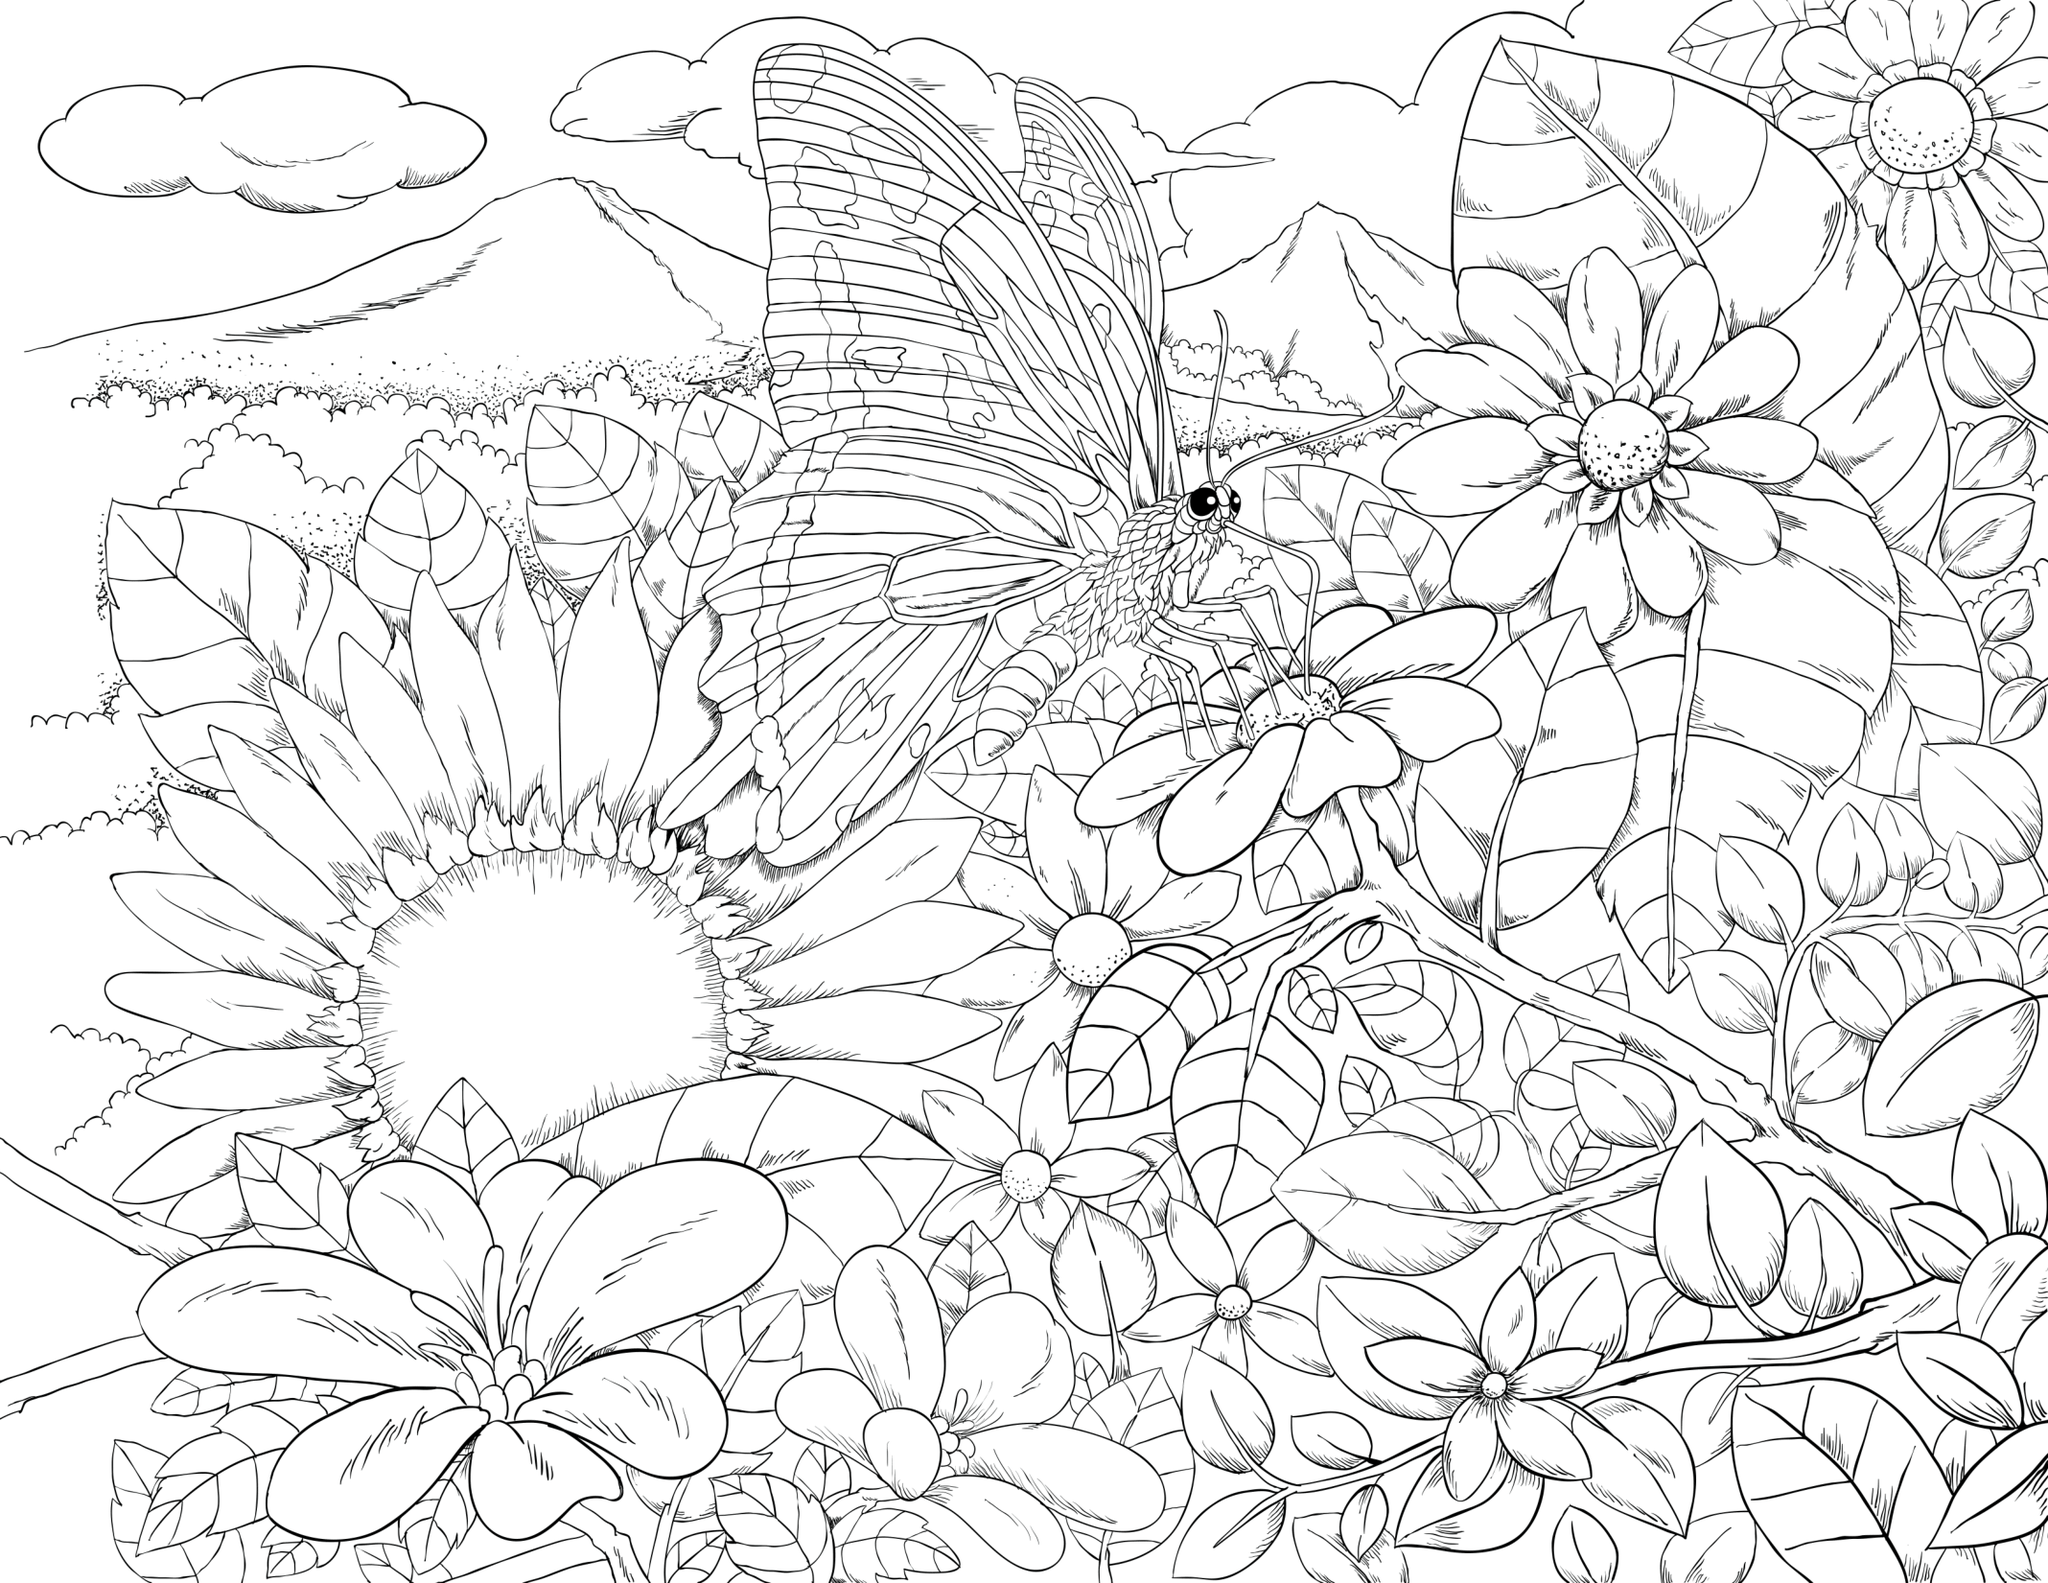 ColorIt Freebie Friday Colors of the Jungle 2021-03-26